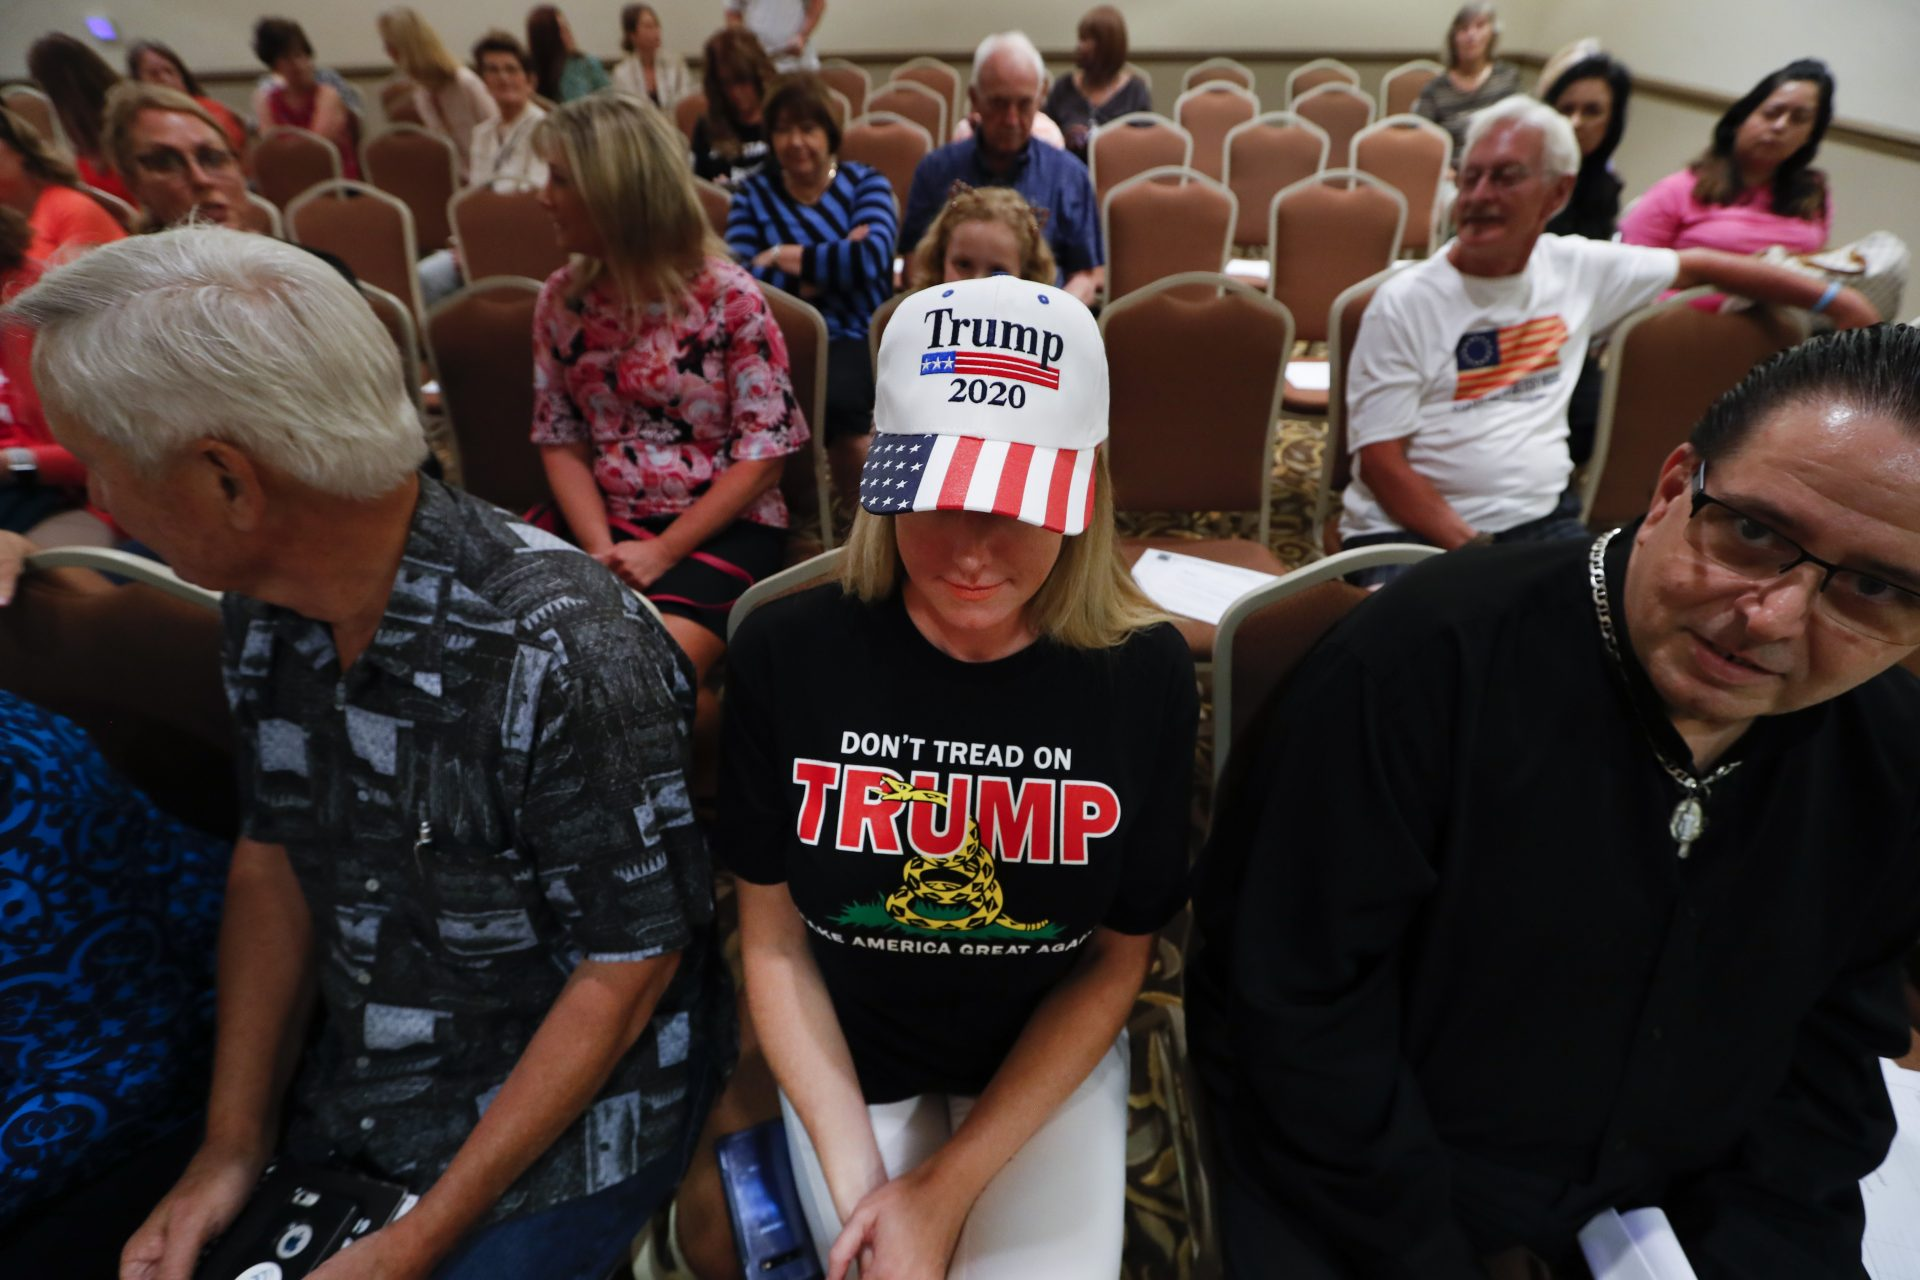 As Vice President Pence comes to central Pa. for Women for Trump event, GOP faces a gender gap | PA Post